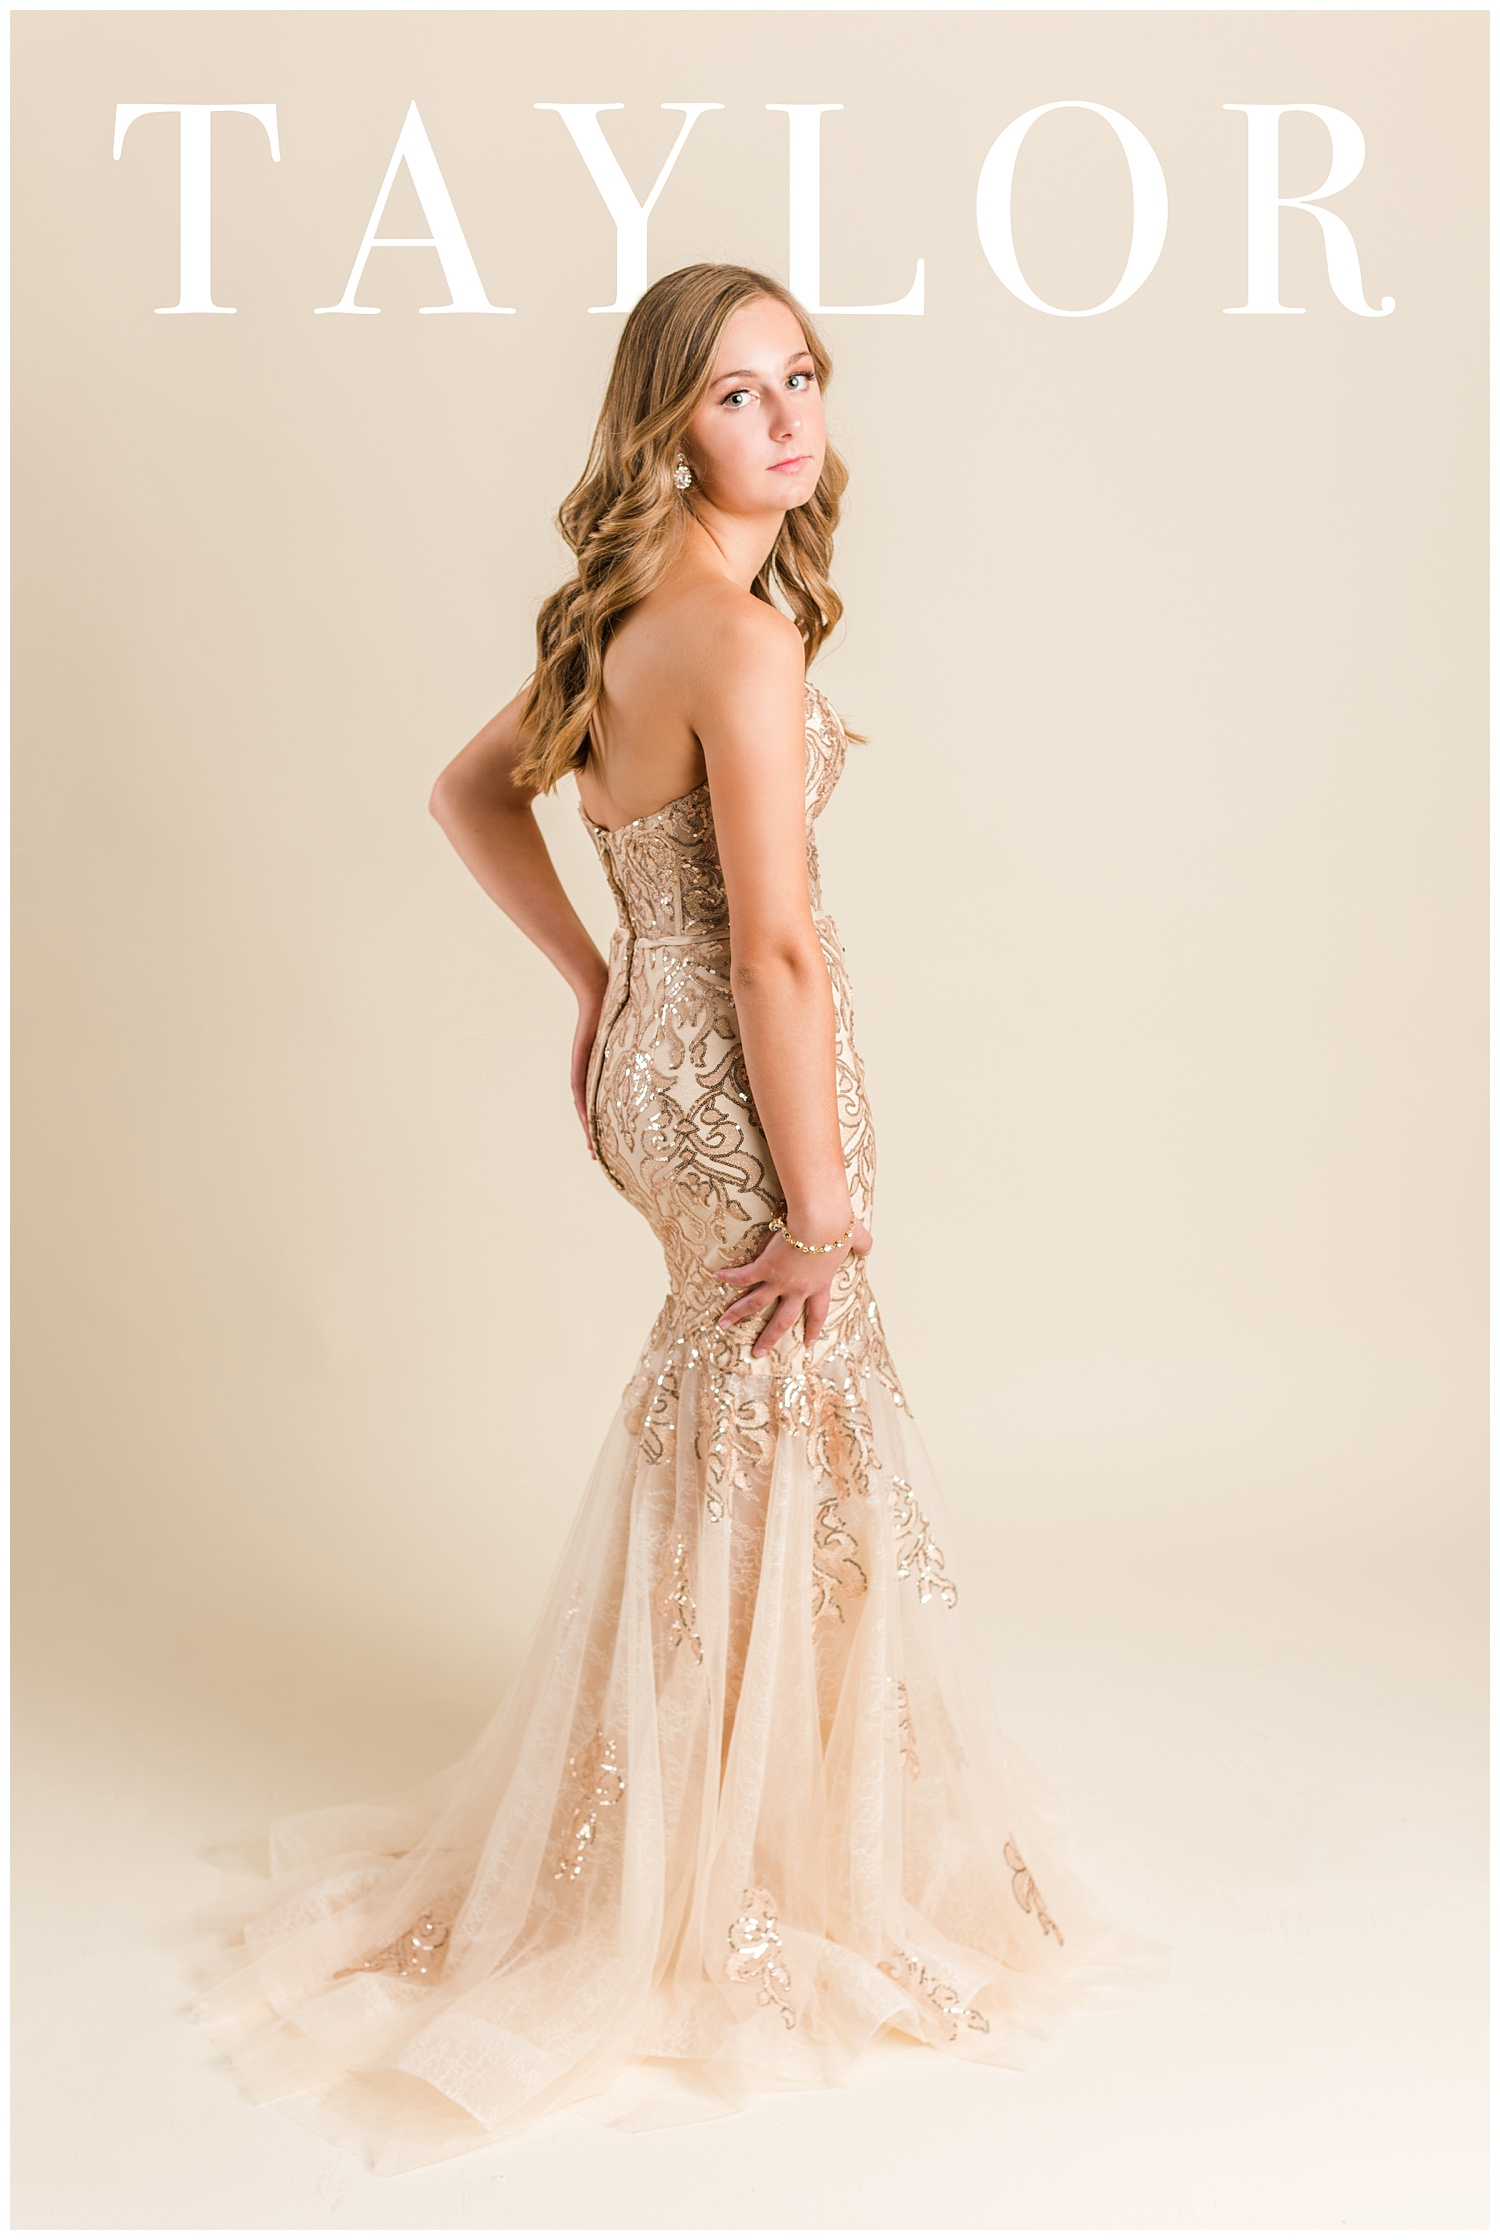 Taylor poses in a Morilee prom dress for a magazine cover | CB Studio